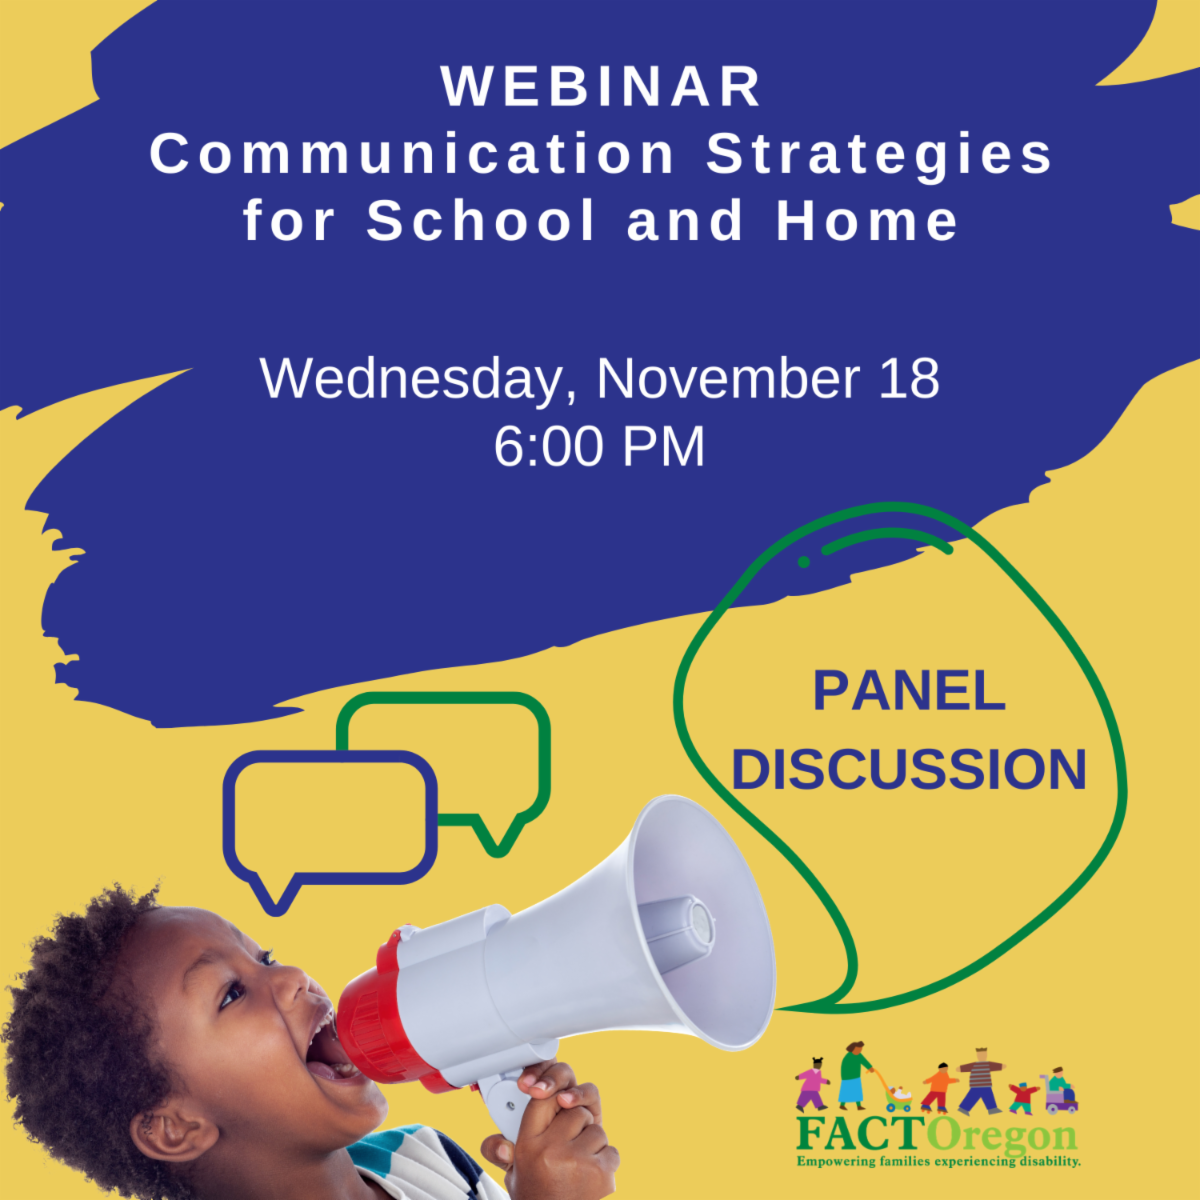 Webinar on Communication Strategies for School and Home. Wednesday November 18 at 6:00 PM.  A young child yells into a bullhorn with a text bubble emerging reading Panel Discussion.